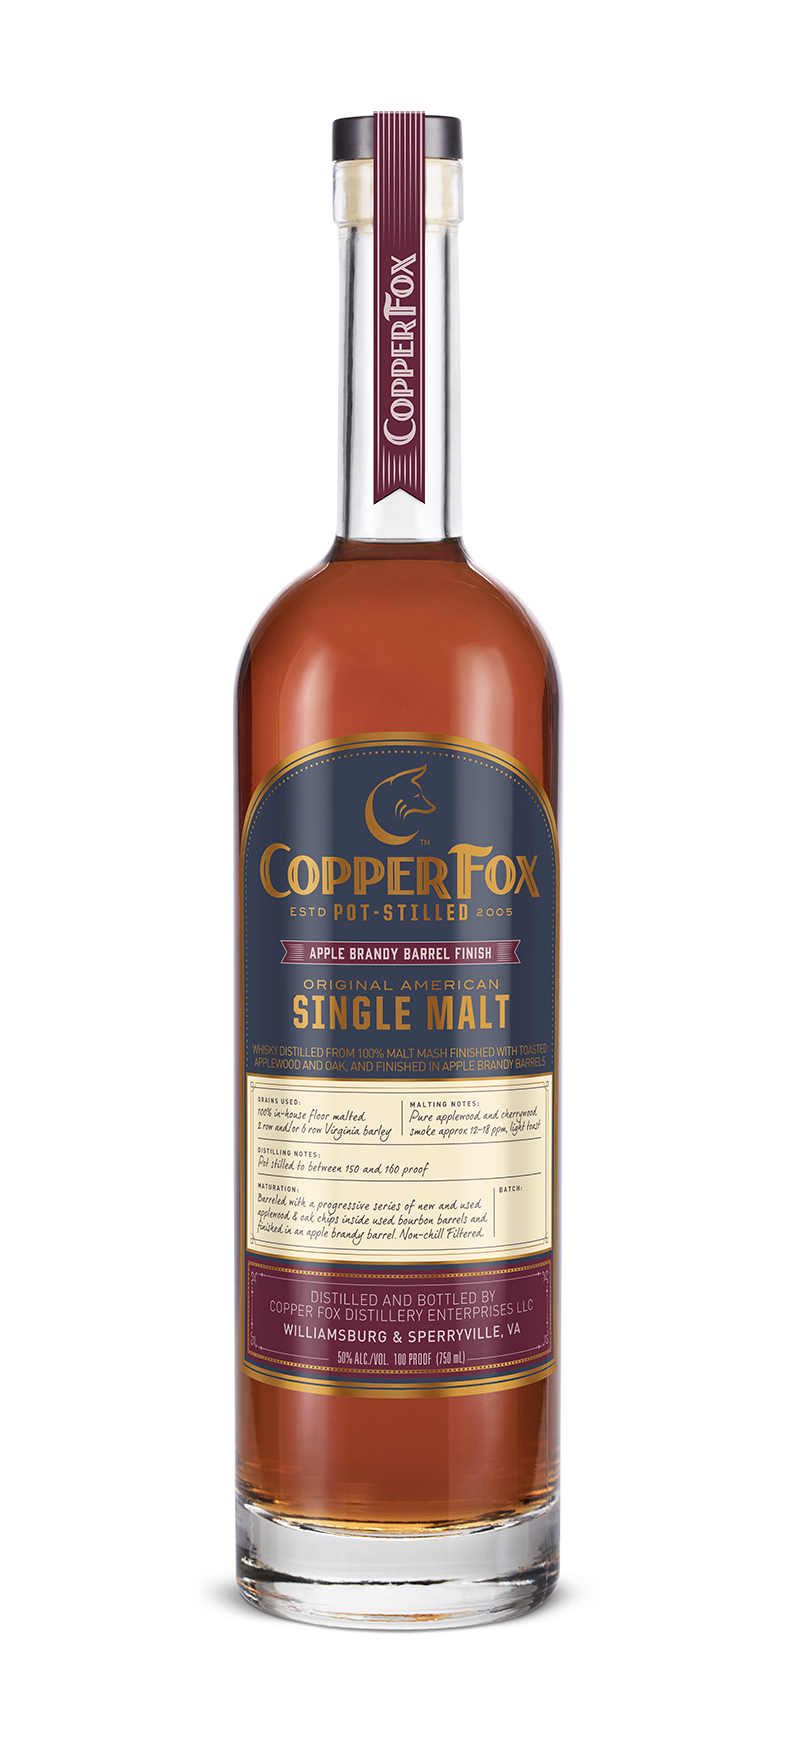 COPPER FOX APPLE BRANDY BARREL FINISH SINGLE MALT - Our signature single malt, aged with a progressive series of hand toasted, select seasoned, new and used applewood and oak chips inside used bourbon barrels, transferred to a second used bourbon barrel and then finished in used Apple Brandy barrels. This stunning whisky acquires additional depth and multiple layers of flavor attributed to the residual brandy spirits in the wood.TASTING NOTESColor: Rose goldNose: Fragrant nose of ripe orchard fruit, candied ginger, fresh sawdust, and damp soil.Palate: Silky body reveals a palate composed of toasted cinnamon stick, sandalwood, dried apples, lemon zest, and barley sugar.Finish: Faint white pepper note accompanies a subtle heat that smolders into a sweet and savory finish of apple marmalade on freshly toasted bread.Non-chill filtered. 50% ABV/100 ProofAn intriguing whisky, layered and reflecting its careful design.‹ PreviousBack to GalleryNext ›